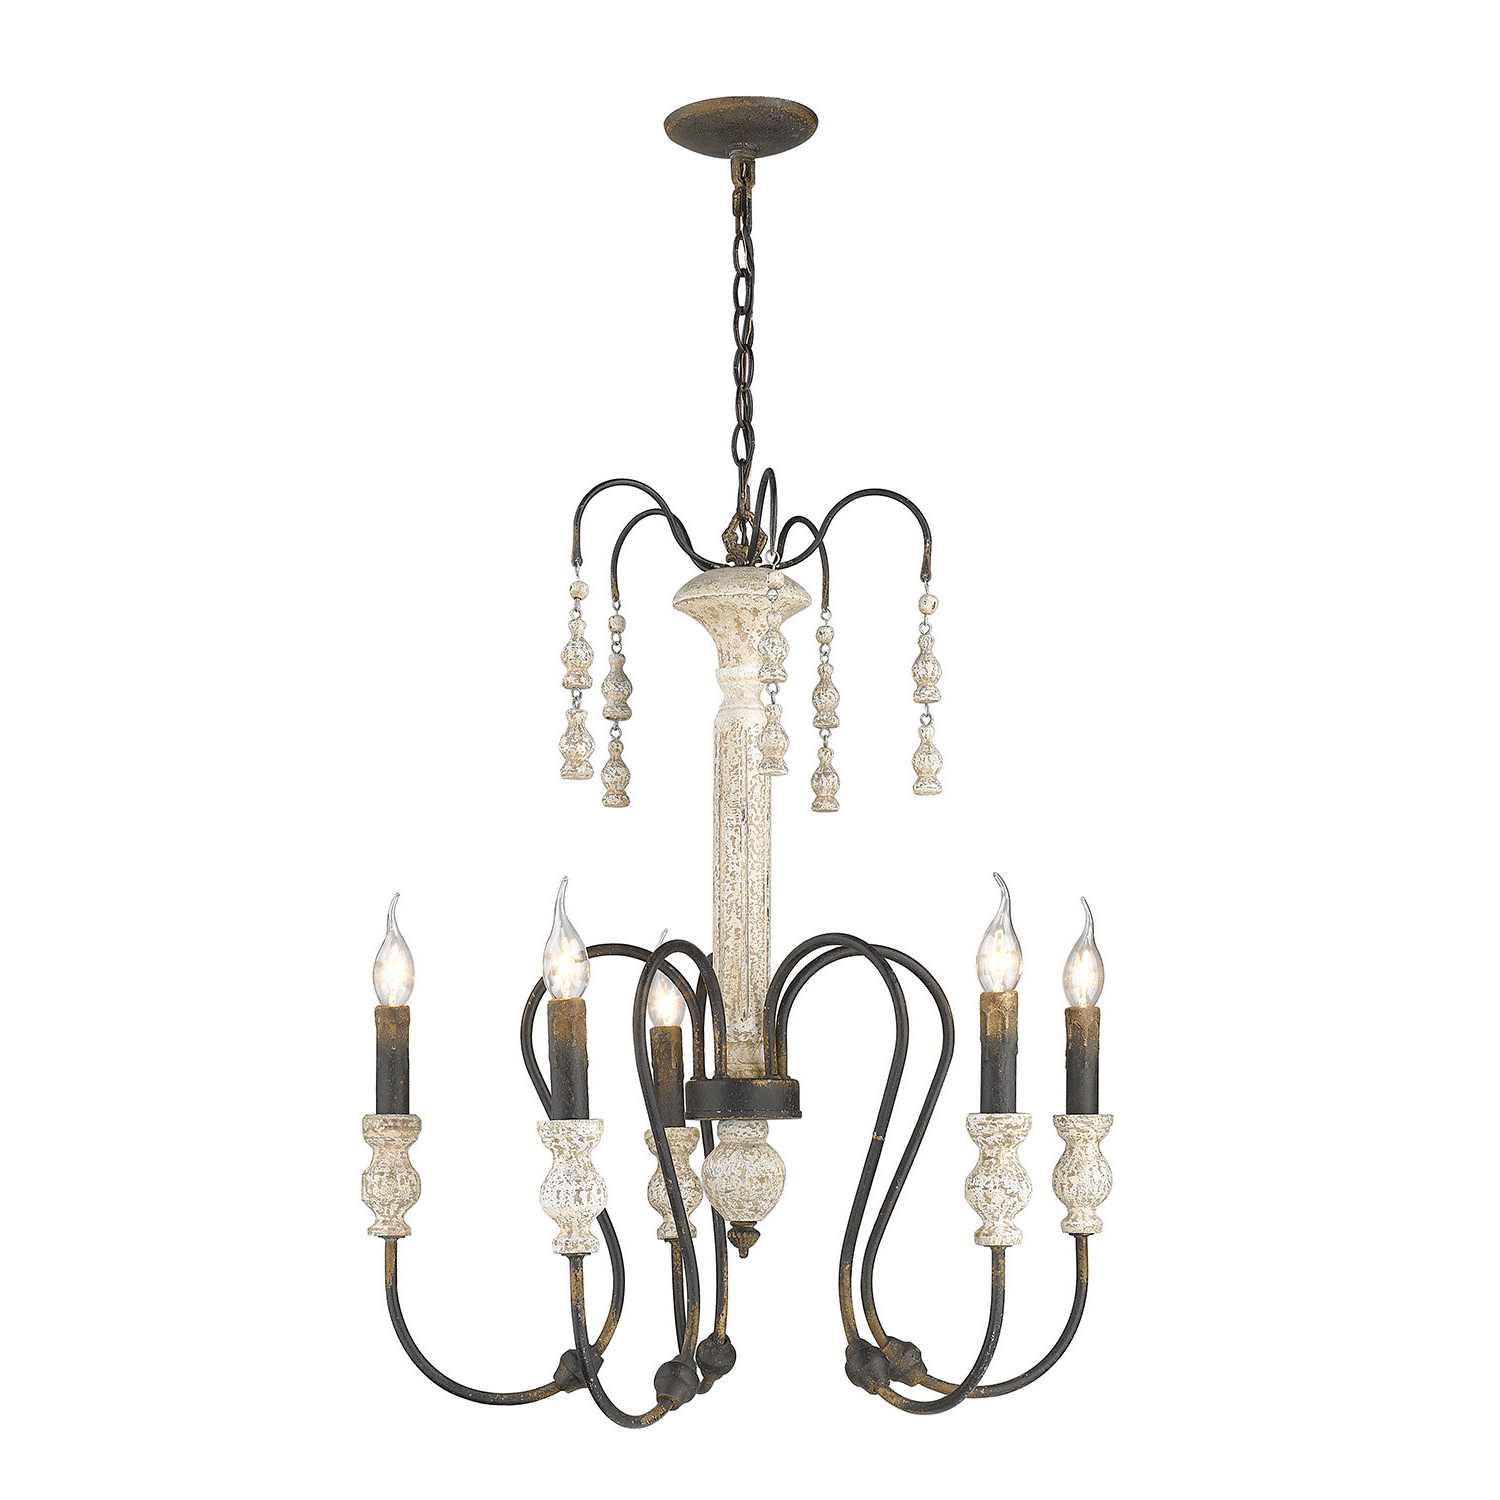 Sherrie 5 Light Candle Style Chandelier Intended For Recent Corneau 5 Light Chandeliers (View 17 of 20)